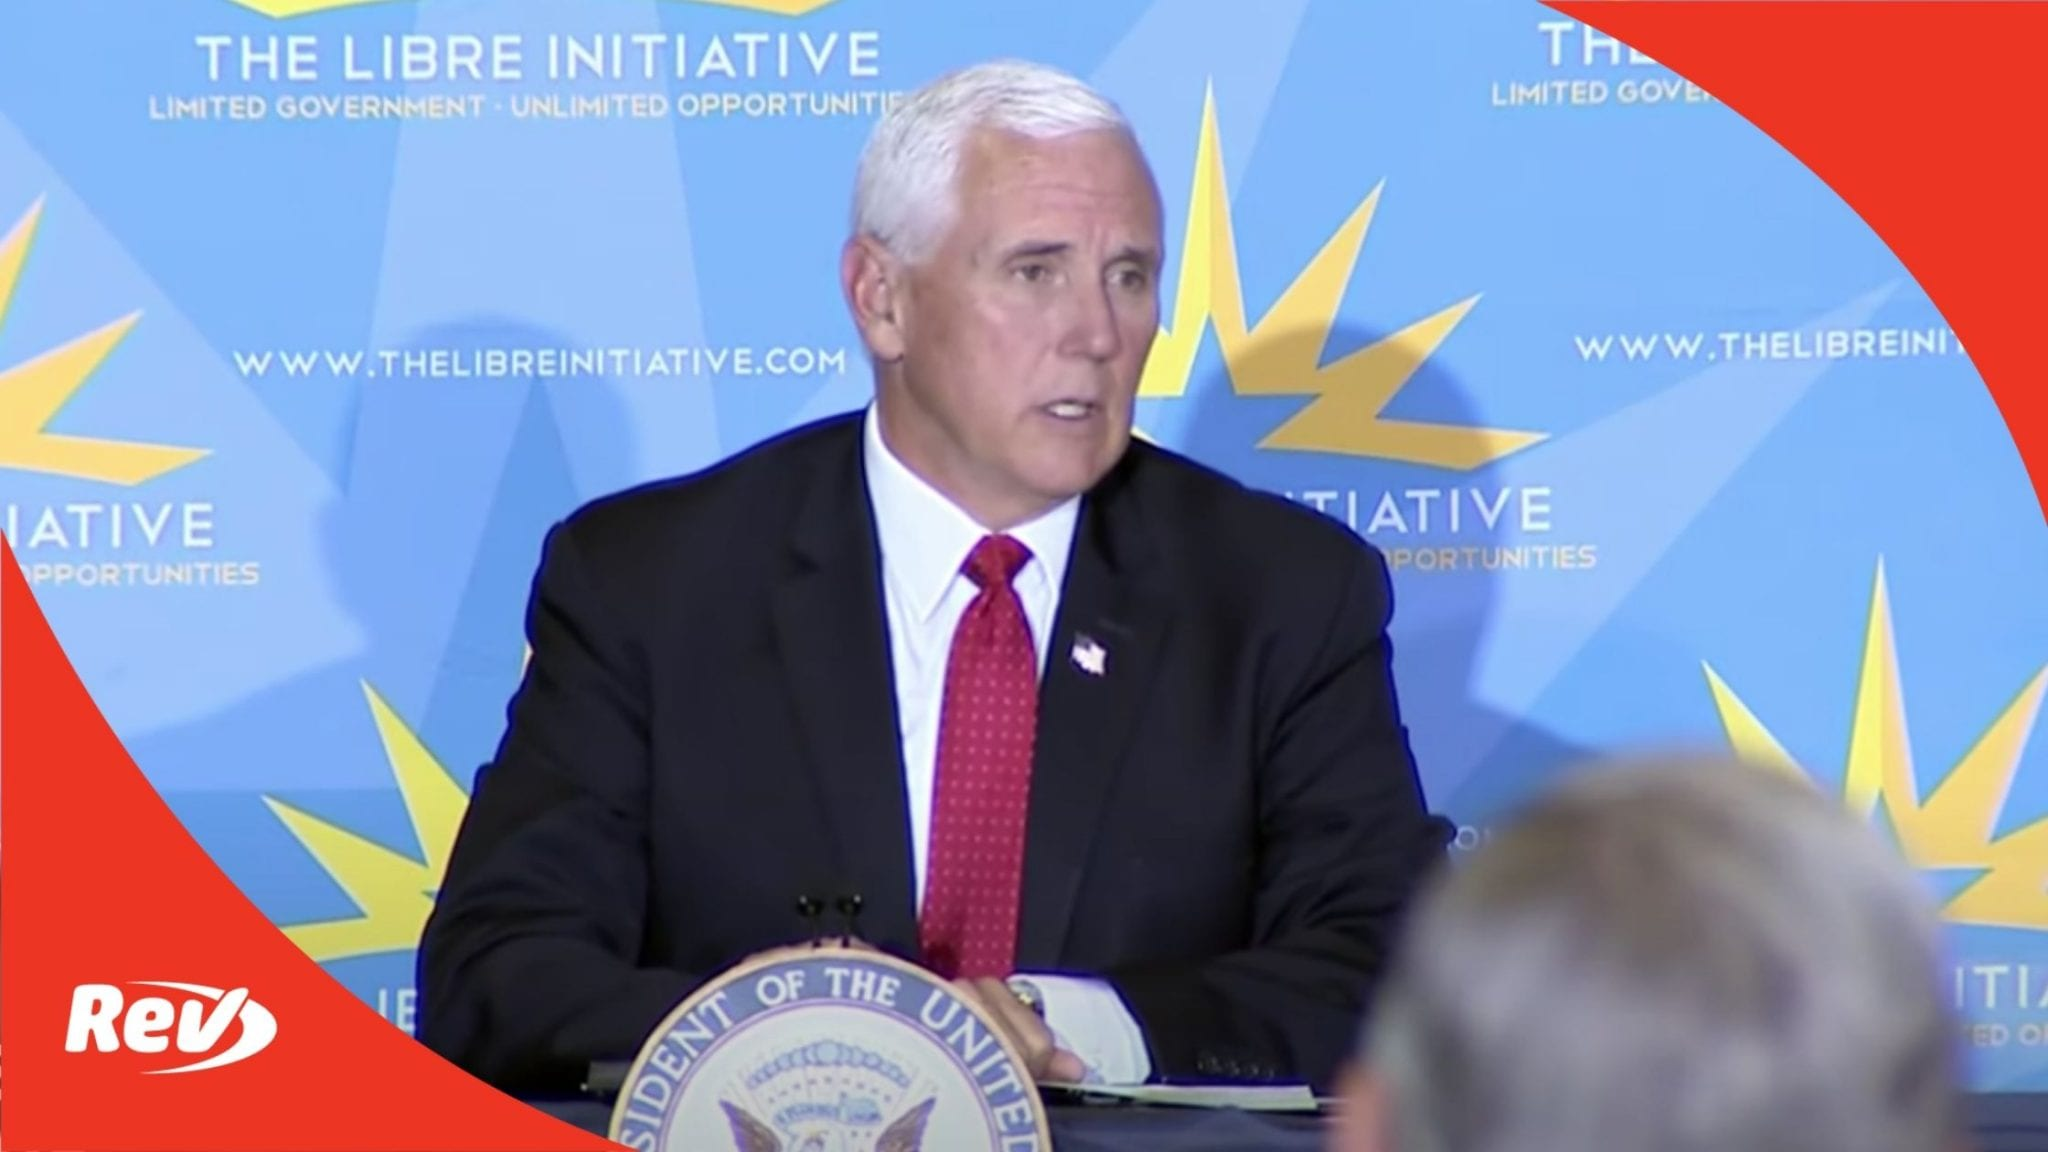 Mike Pence Libre Initiative Roundtable Event Transcript September 18